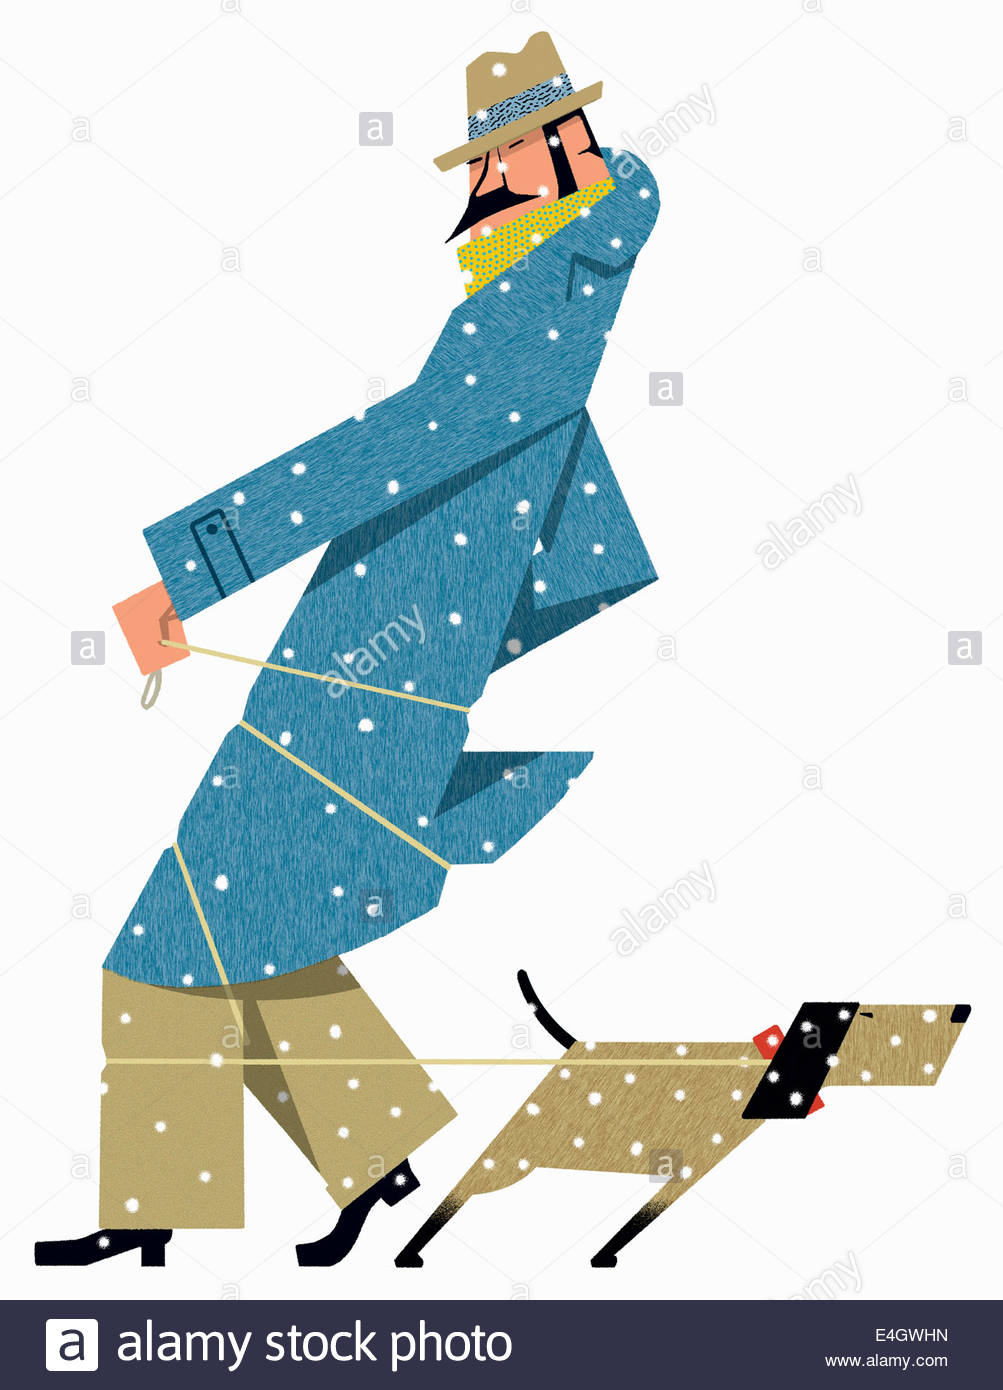 Dog tugging on leash wrapped round man in snow - Stock Image